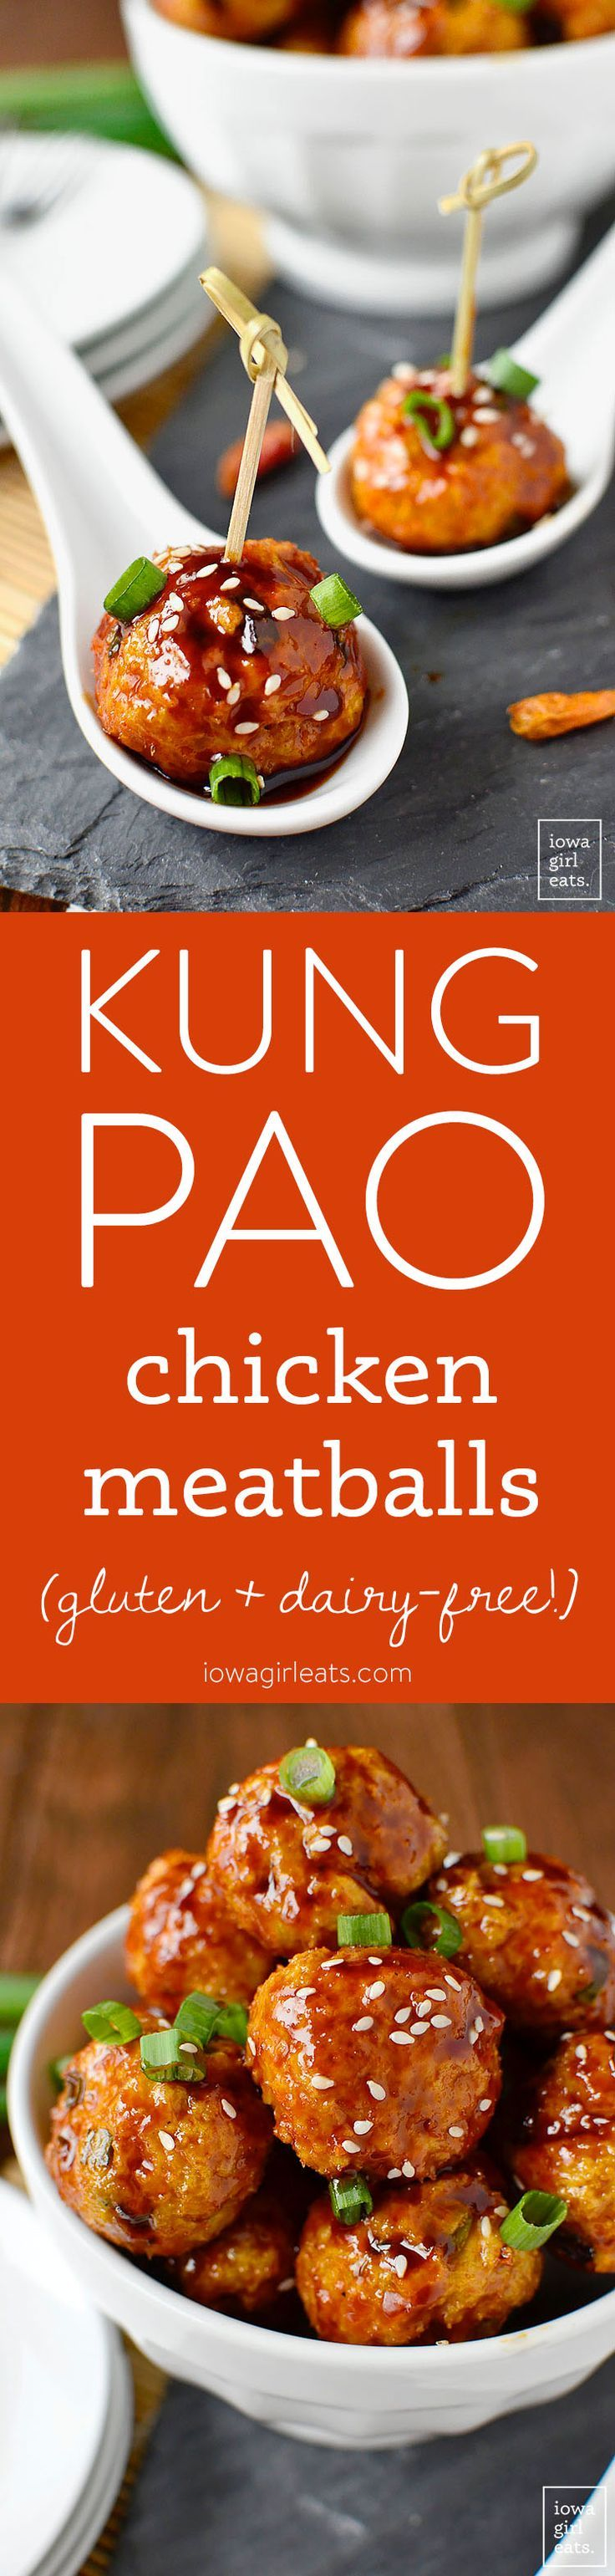 Kung Pao Chicken Meatballs are the perfect bite-sized, gluten-free game day or party appetizer! | iowagirleats.com